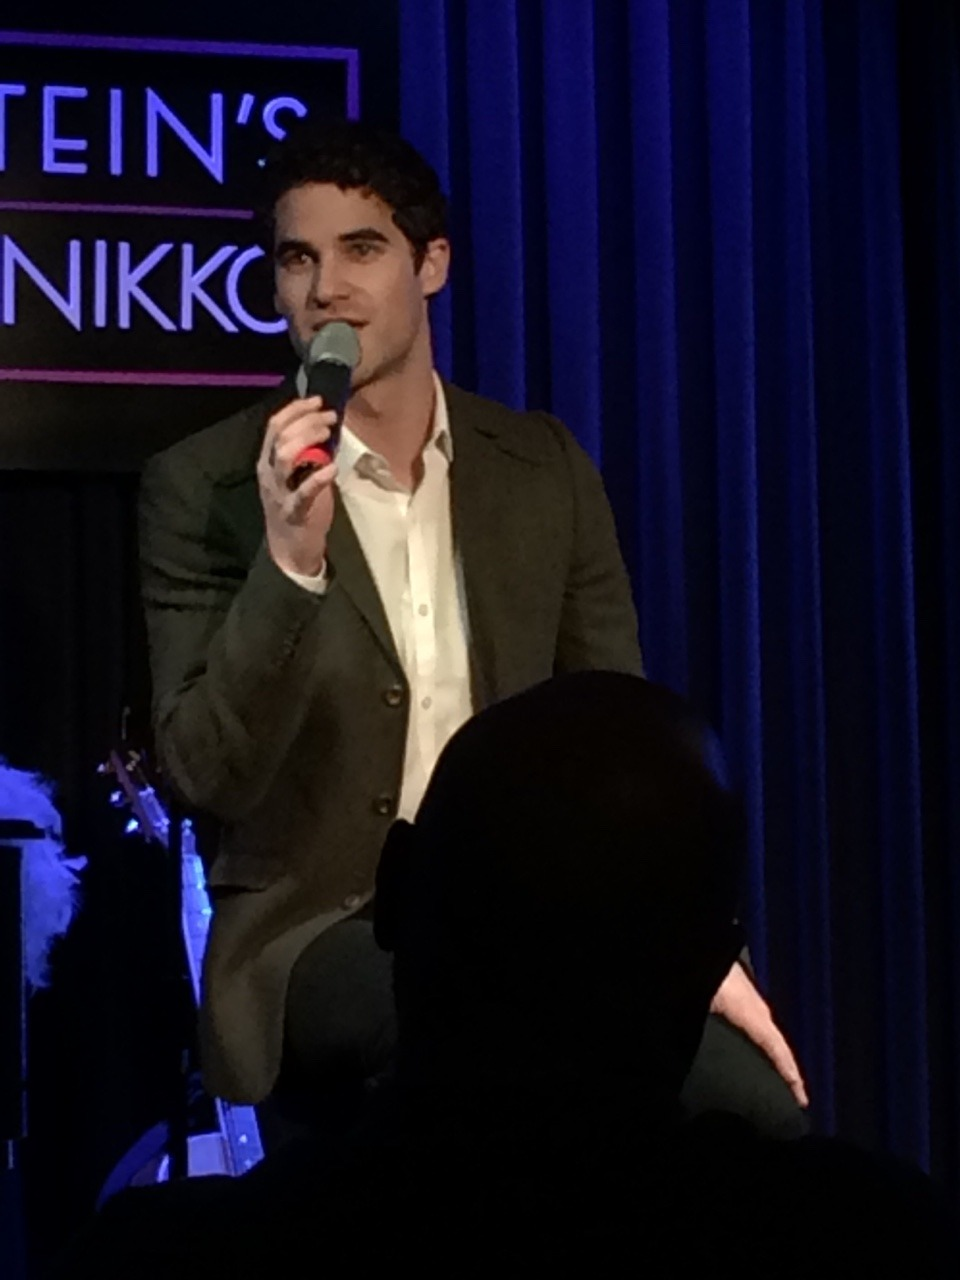 darrencriss - Darren's Concerts and Other Musical Performances for 2016 - Page 2 Tumblr_ohhx38YuOX1qlbe4wo6_1280